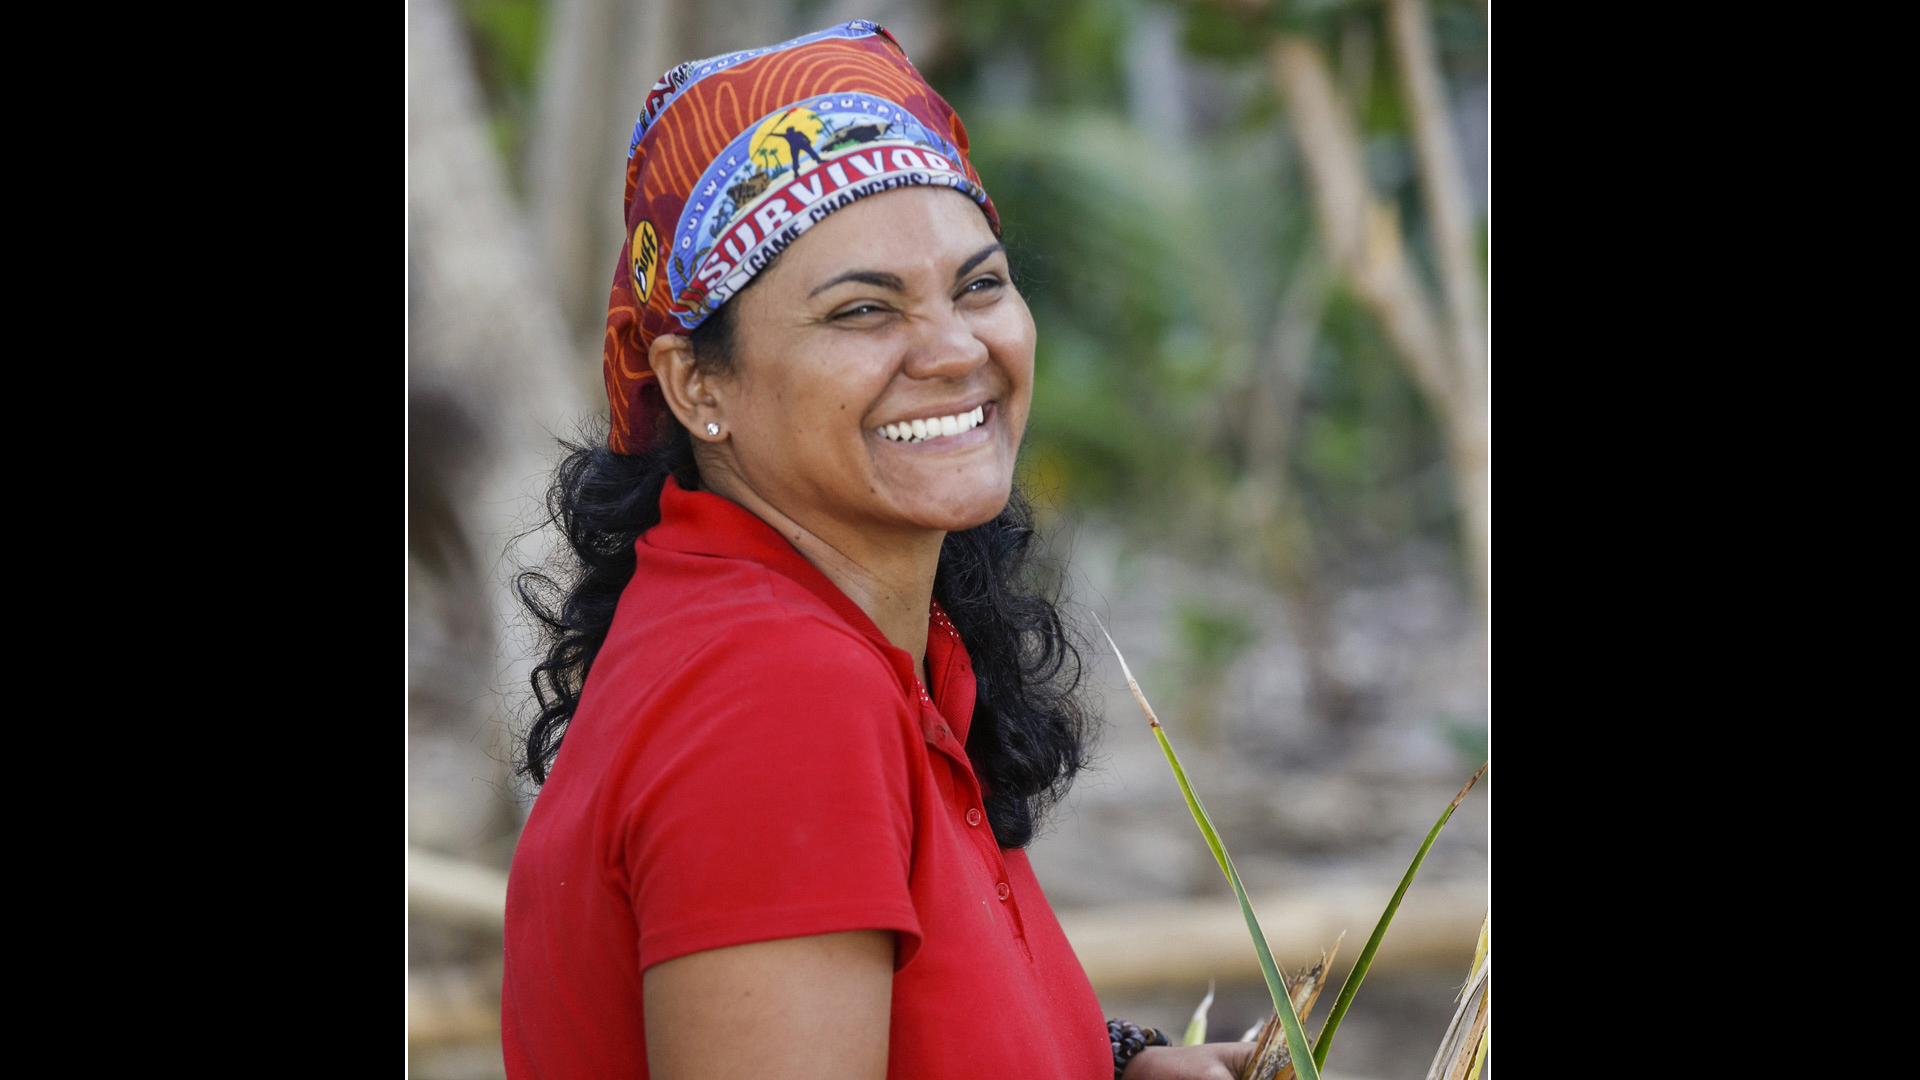 Will two-time Survivor winner Sandra Diaz-Twine take the title a third time?